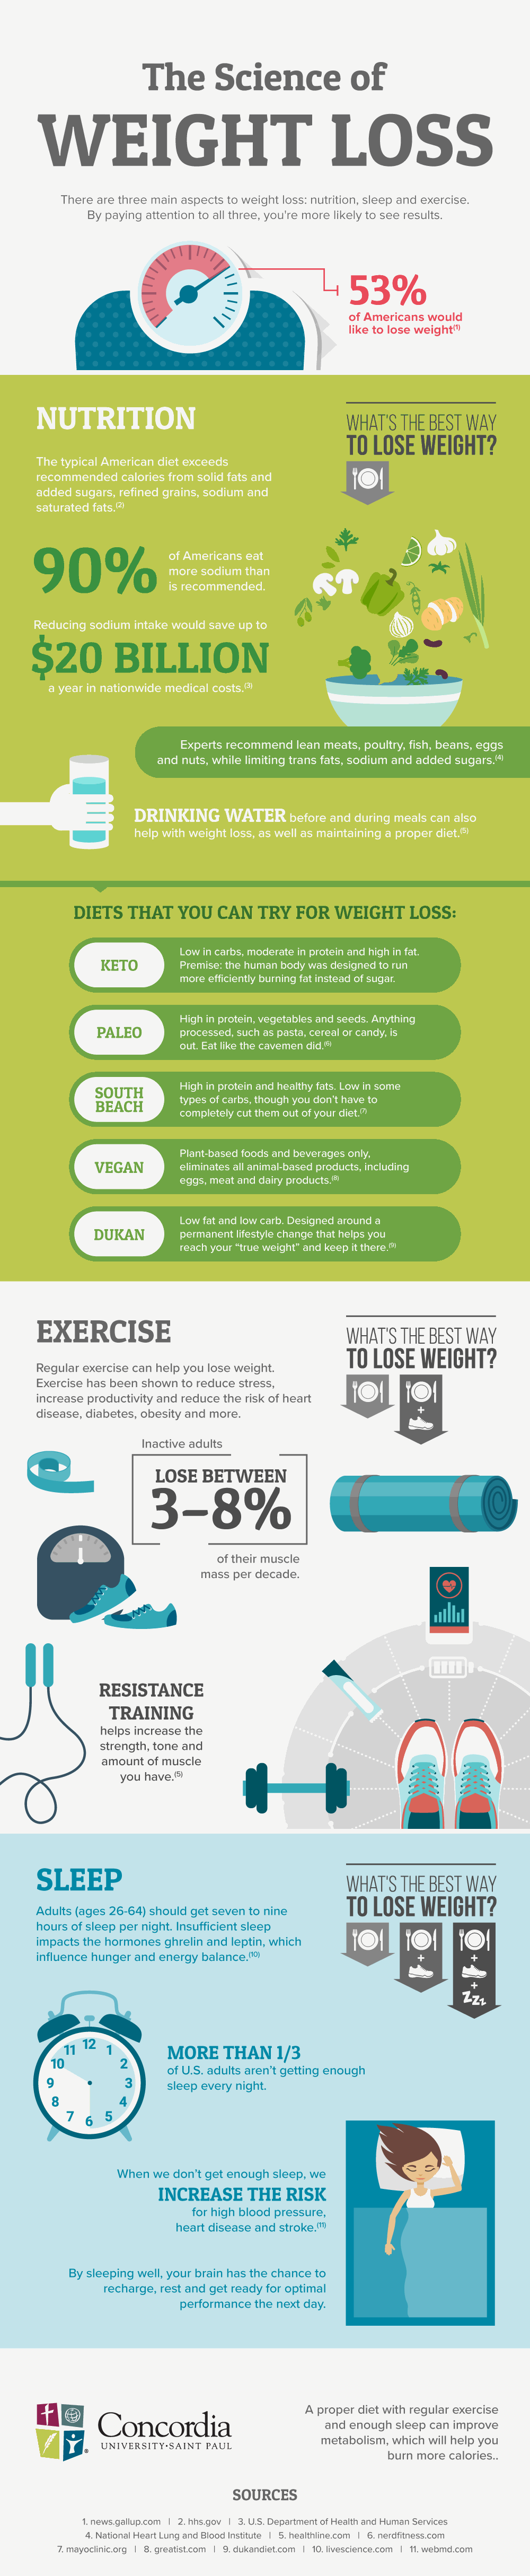 The Science Of Weight Loss Infographic